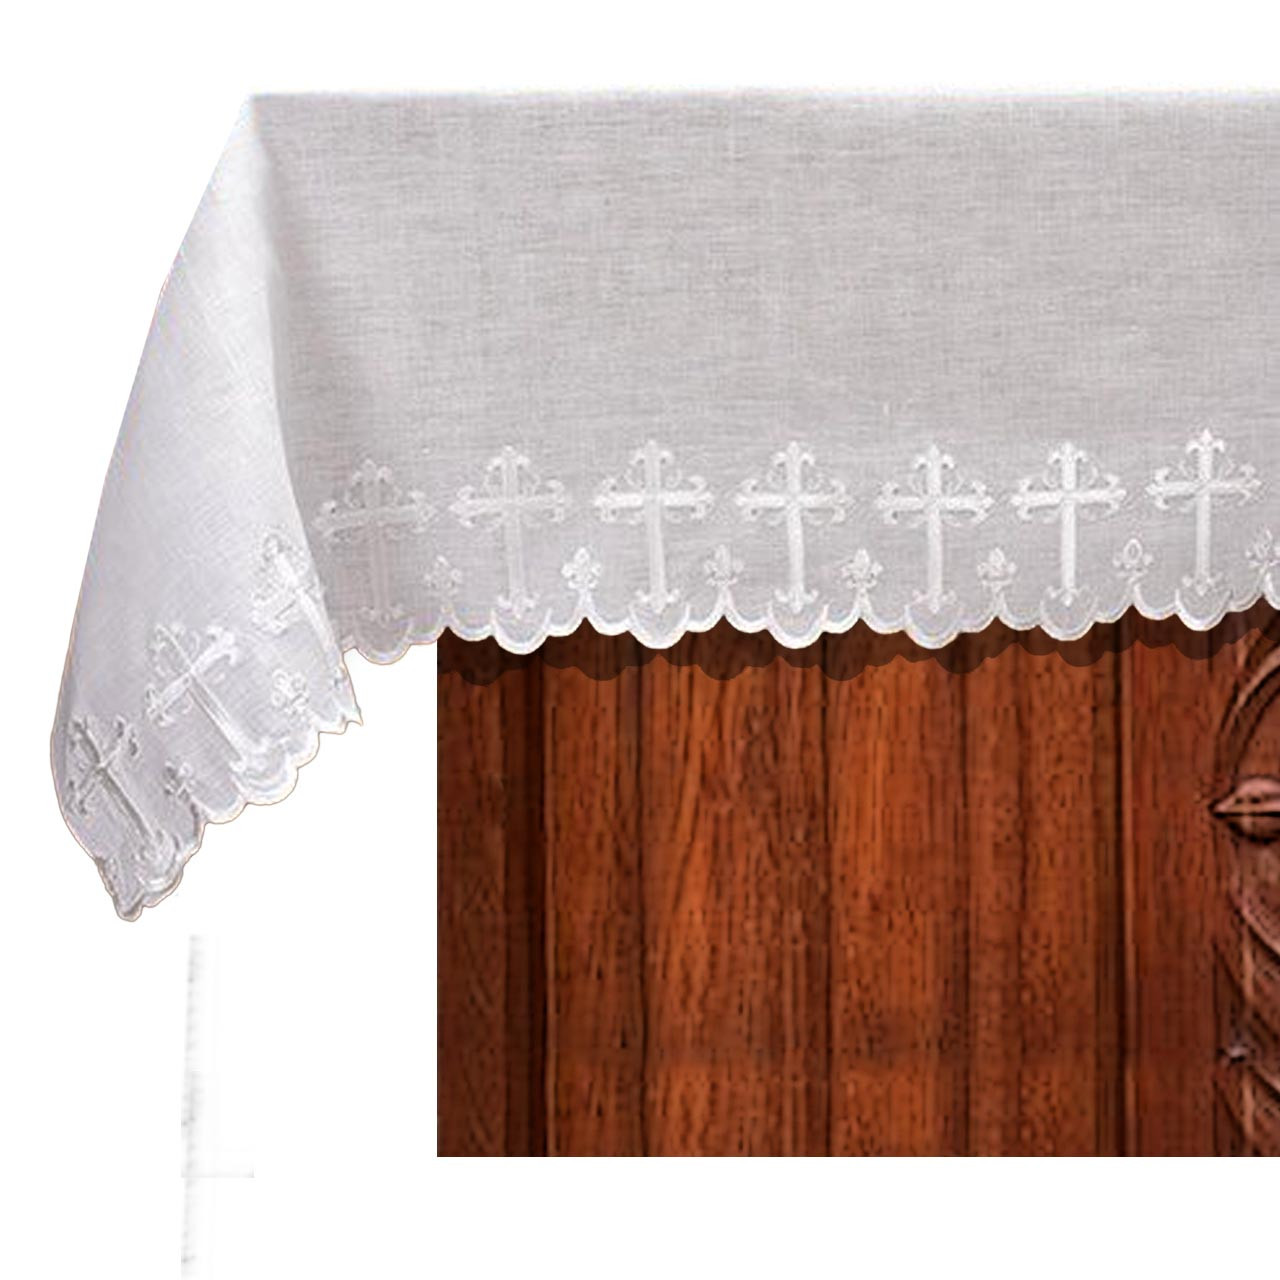 2-Sided Scallop-Edged Altar Frontal 100% Linen